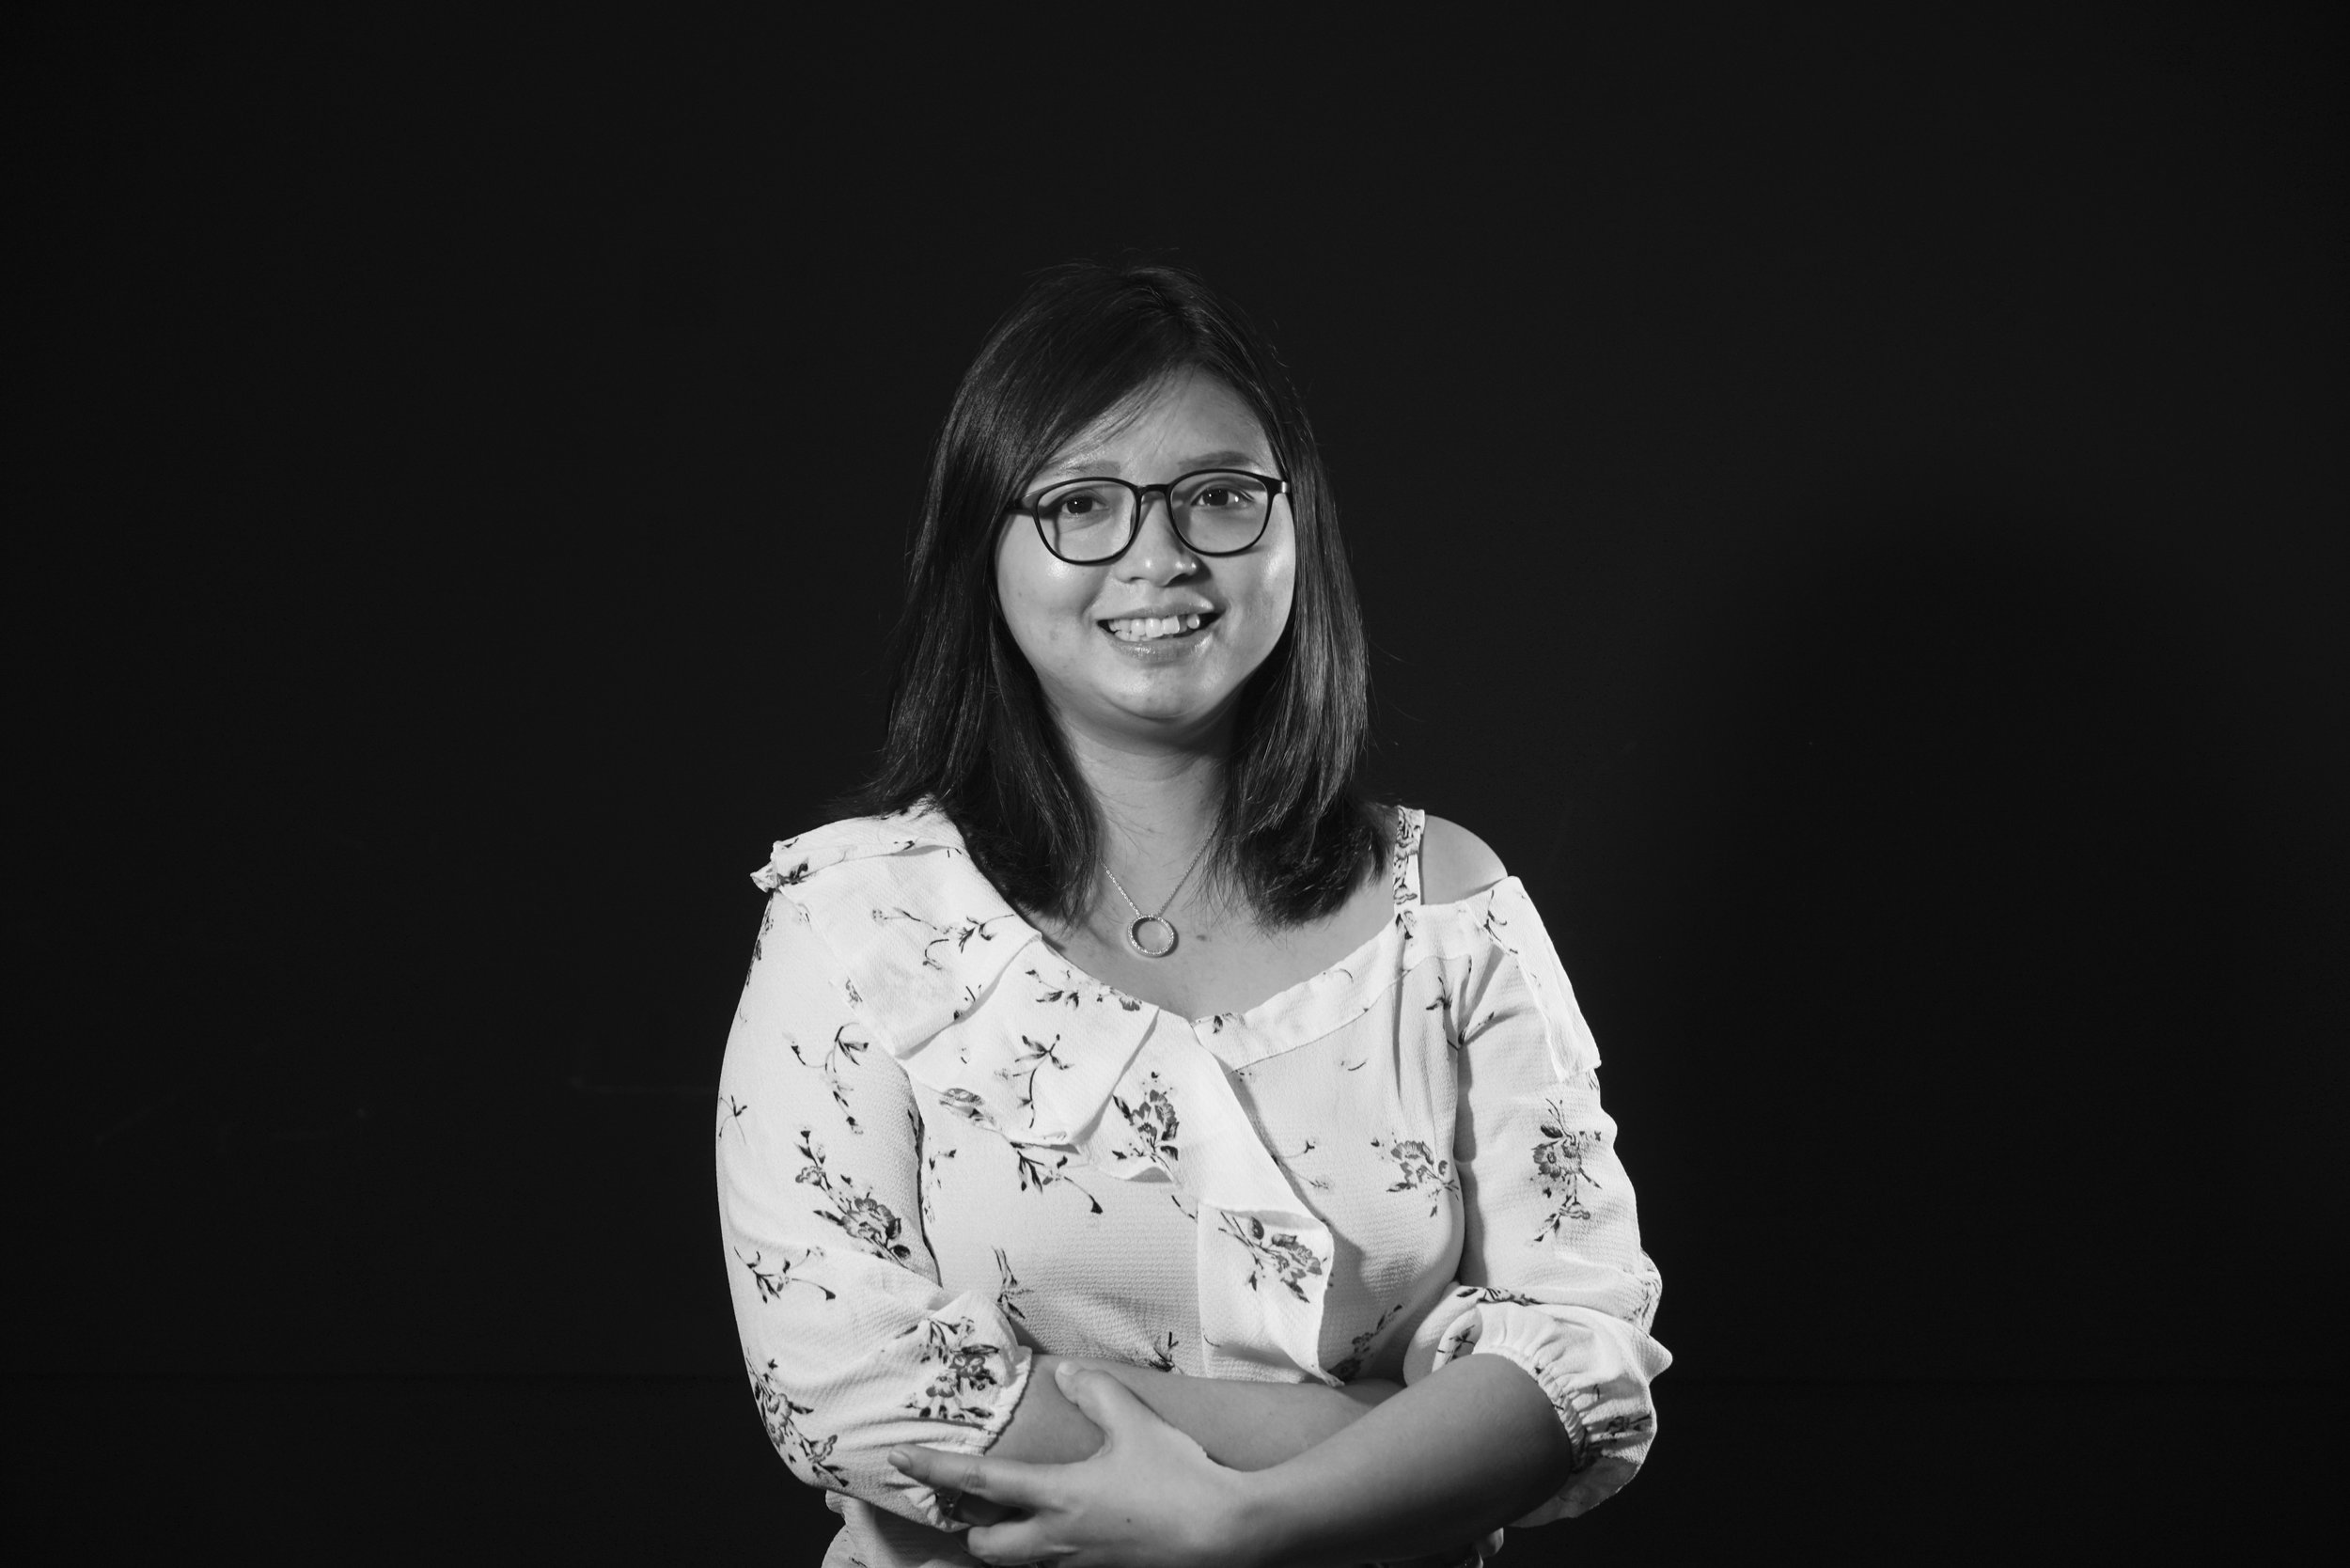 Yee Mon Swe (Wendy Swe)  CULTURE OPERATIONS MANAGER  Wendy is born and raised in Yangon where she spent most of her youth before pursuing a career in Singapore from 2009-2017. She is now working with Turning Tables Myanmar. She has vast experience in management, sales, and organisational administration and coordination from working with United Nations Population Fund, tourism companies, and private enterprises in Singapore.  Wendy's educational background includes an English diploma, a major in Chemistry, and a diploma in Business Administration majoring in Human Resource Management from PSB Academy in Singapore.